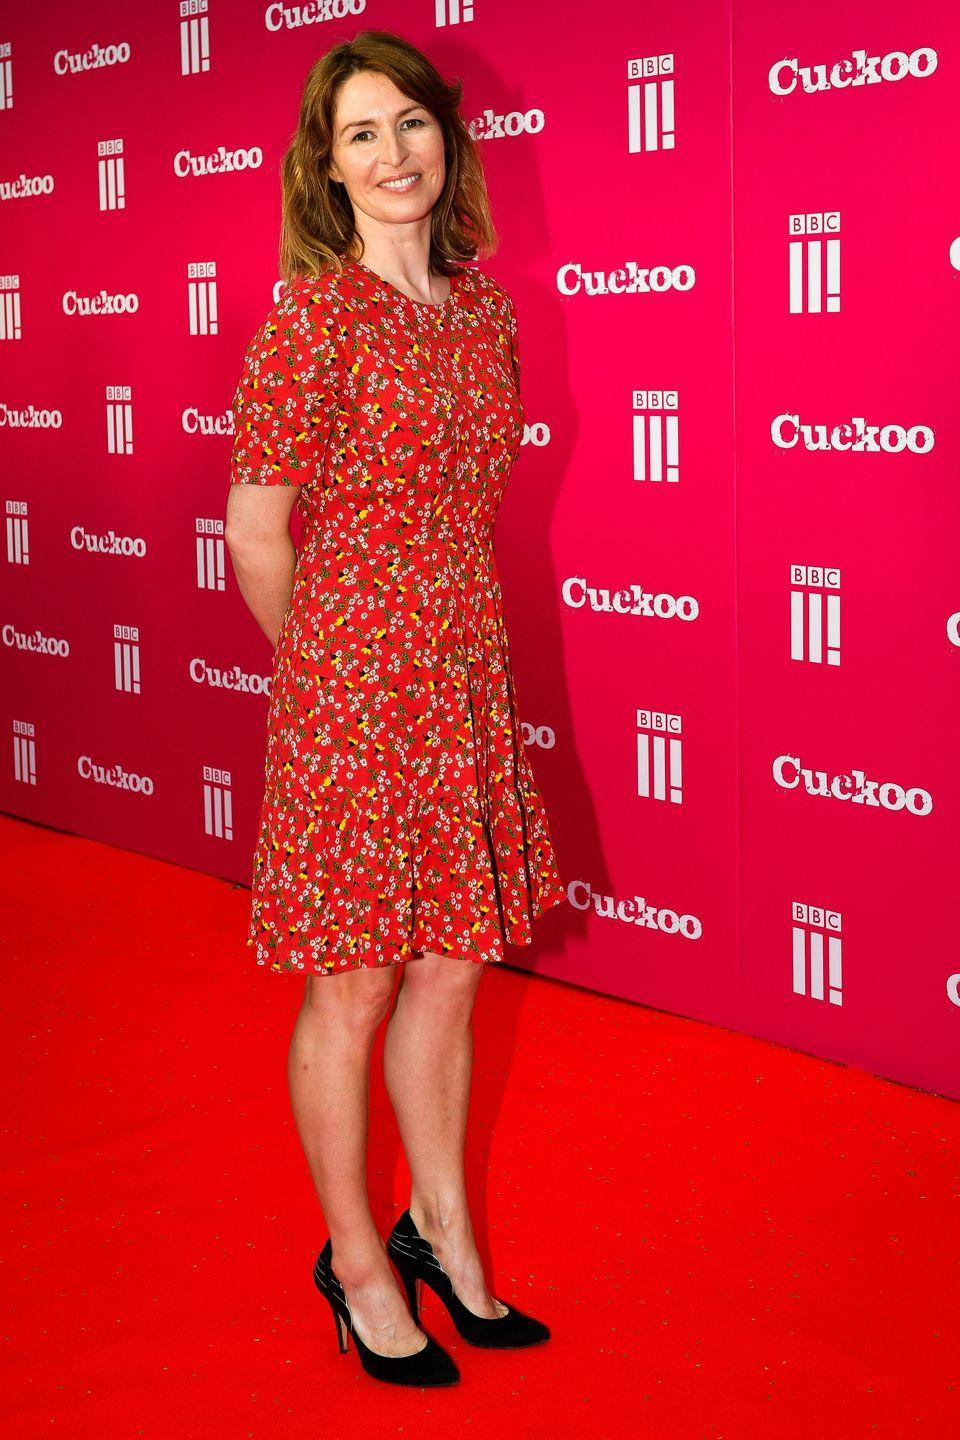 <p>After she left the show in season 5, Helen returned to her booming career in the UK. The actress starred in shows, like <em>Dirk Gently </em>and <em>Cold Feet,</em> as well as the 2011 film <em>Anonymous</em>. </p>